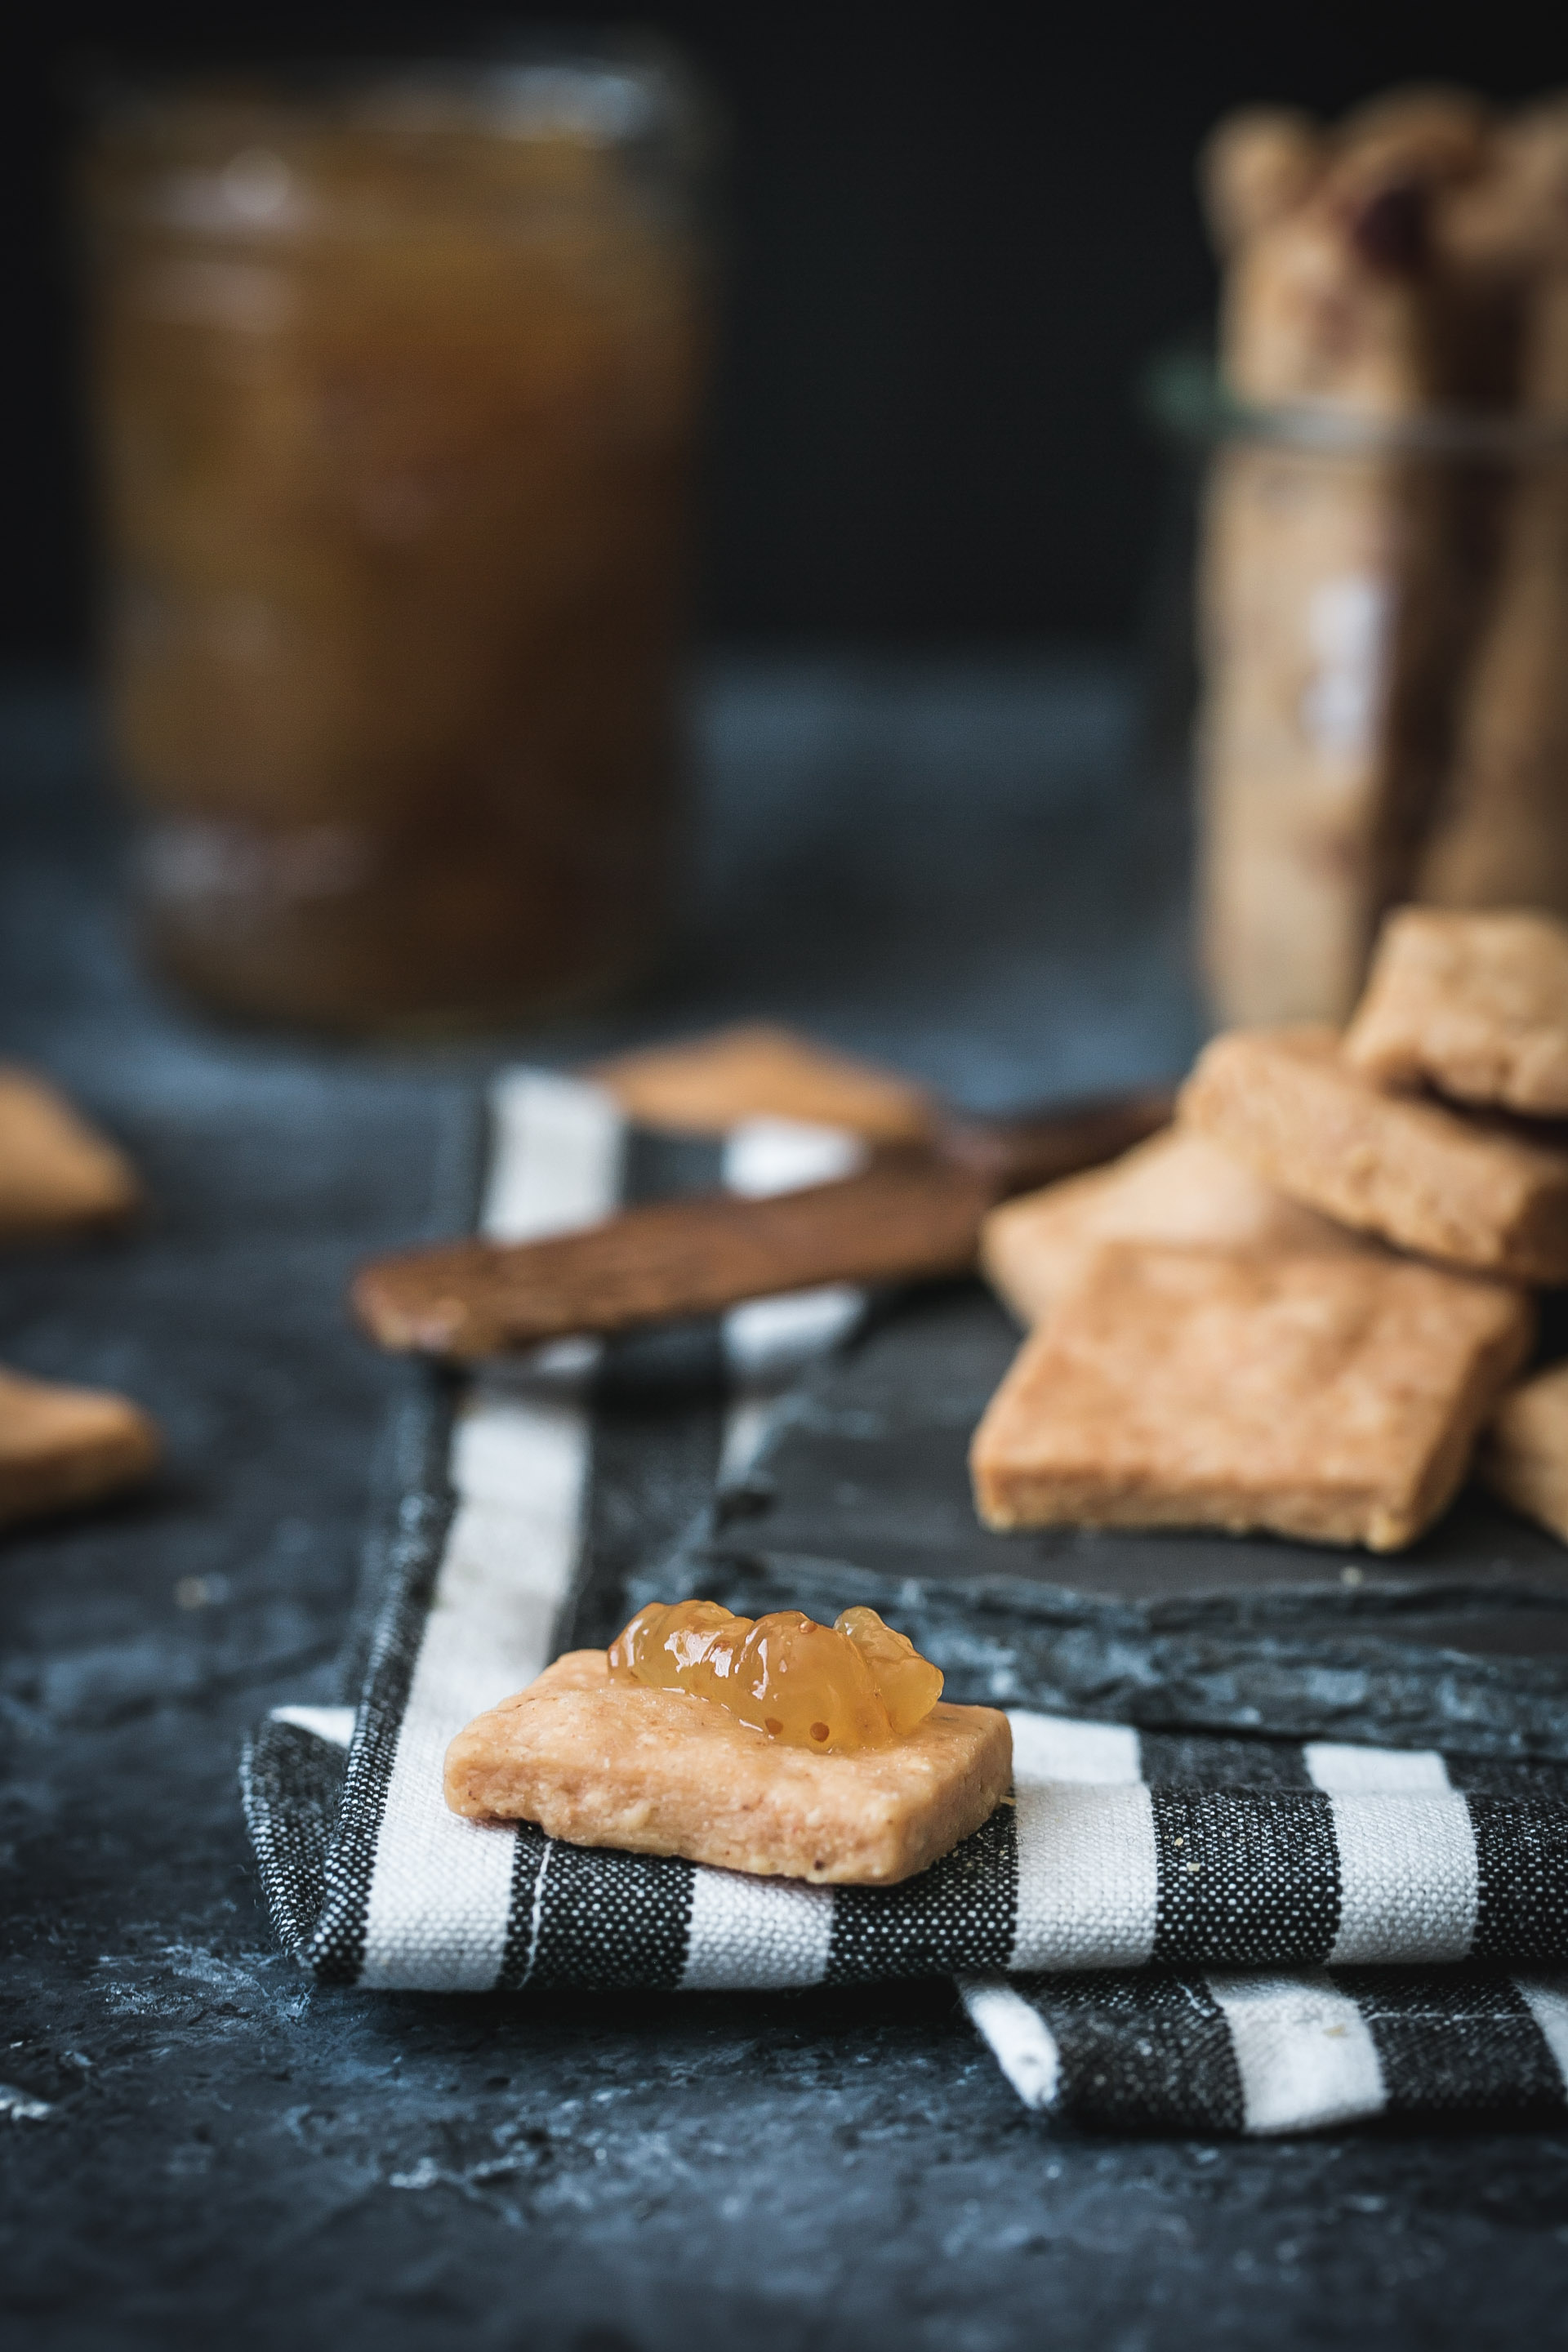 A manchego cheese cracker topped with fig jam